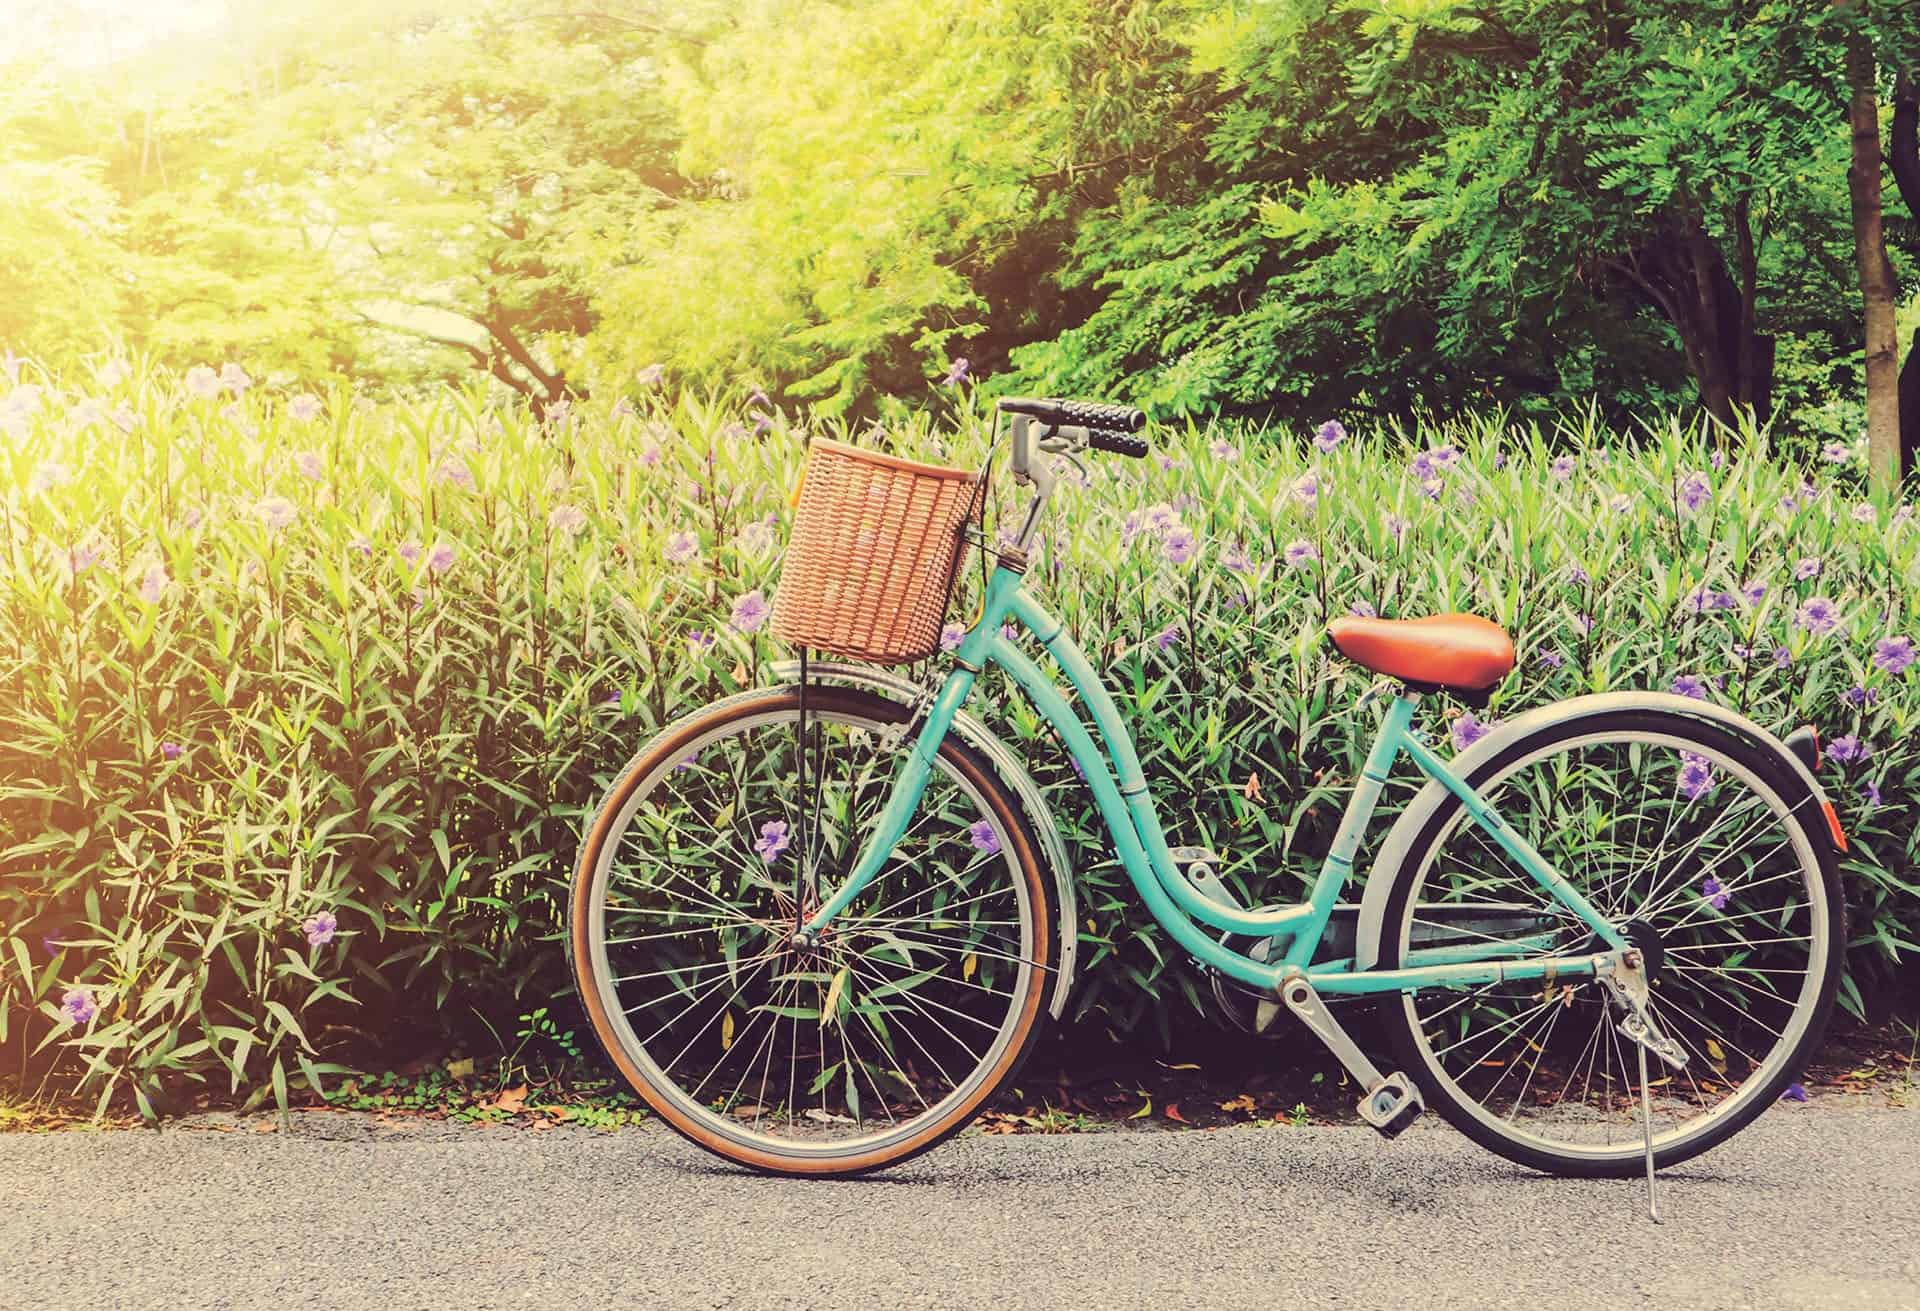 Mint beach cruiser style bicycle on path beside field of flowers.